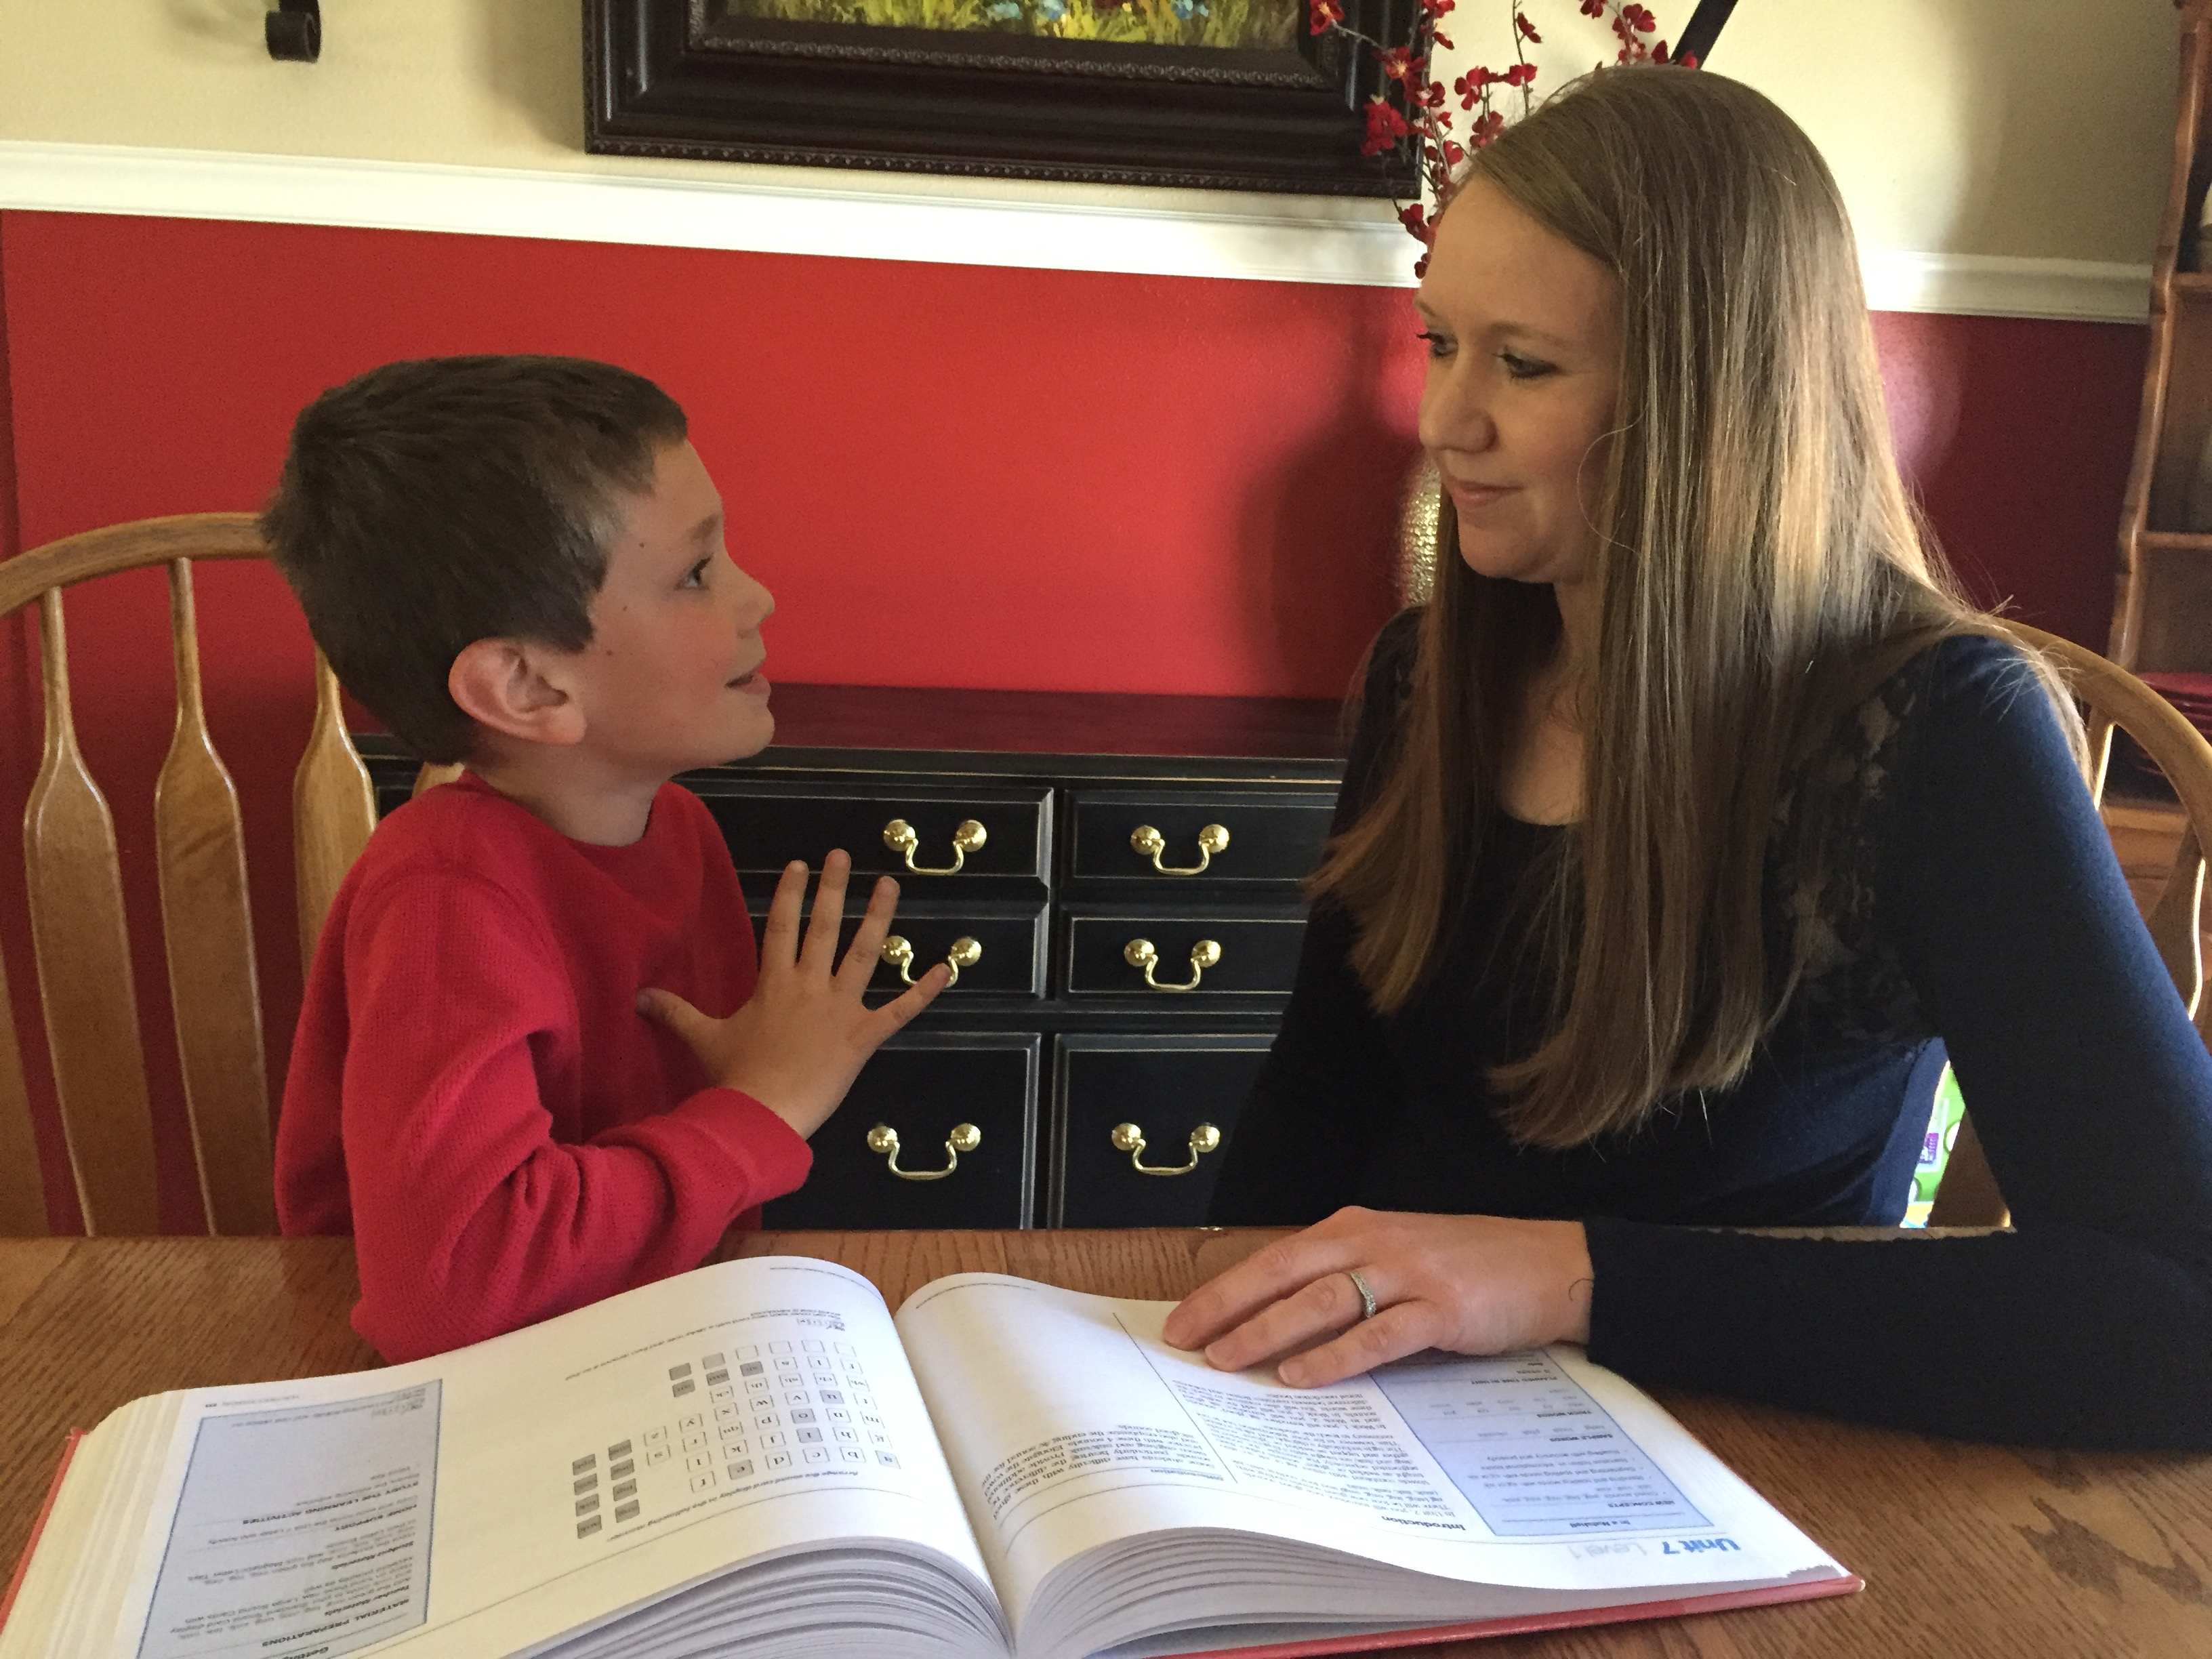 The Advantages of Signing in the Classroom and Homeschool